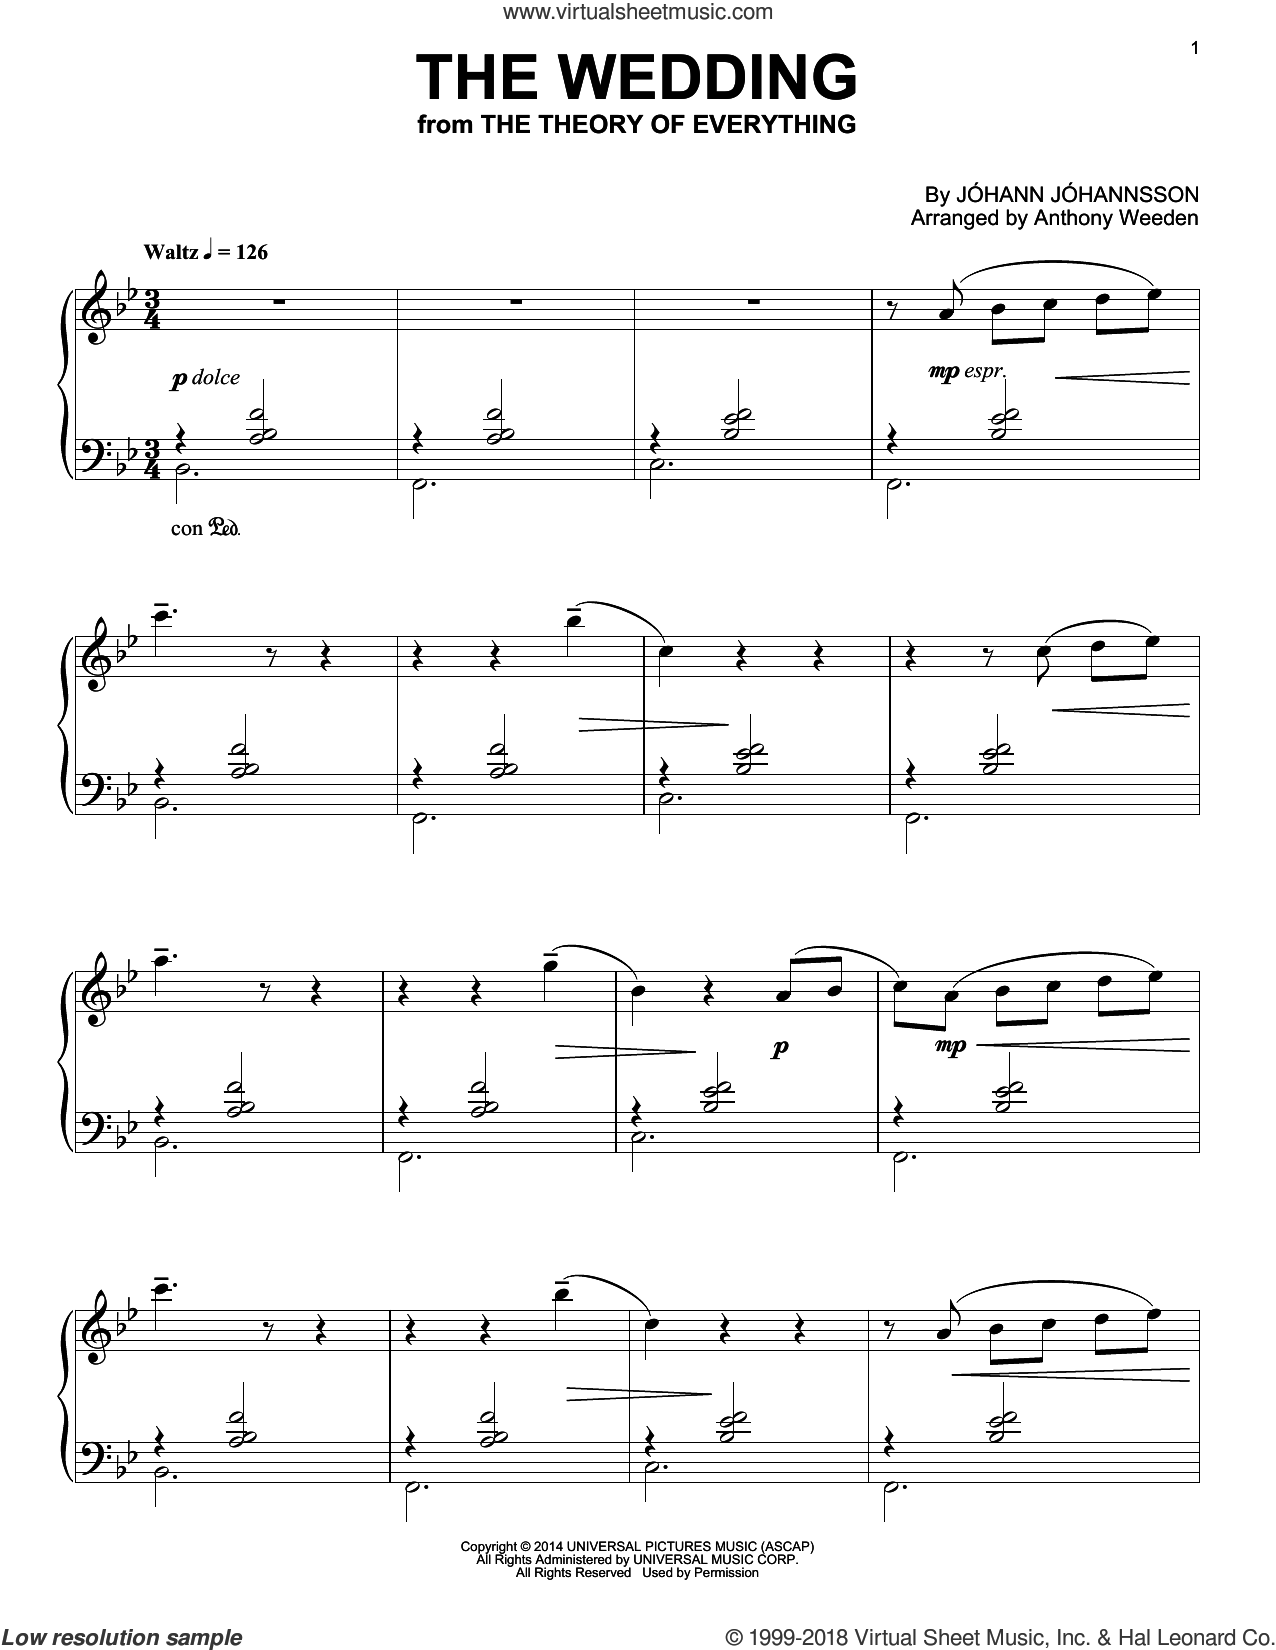 The Wedding sheet music for piano solo by Johann Johannsson, intermediate skill level